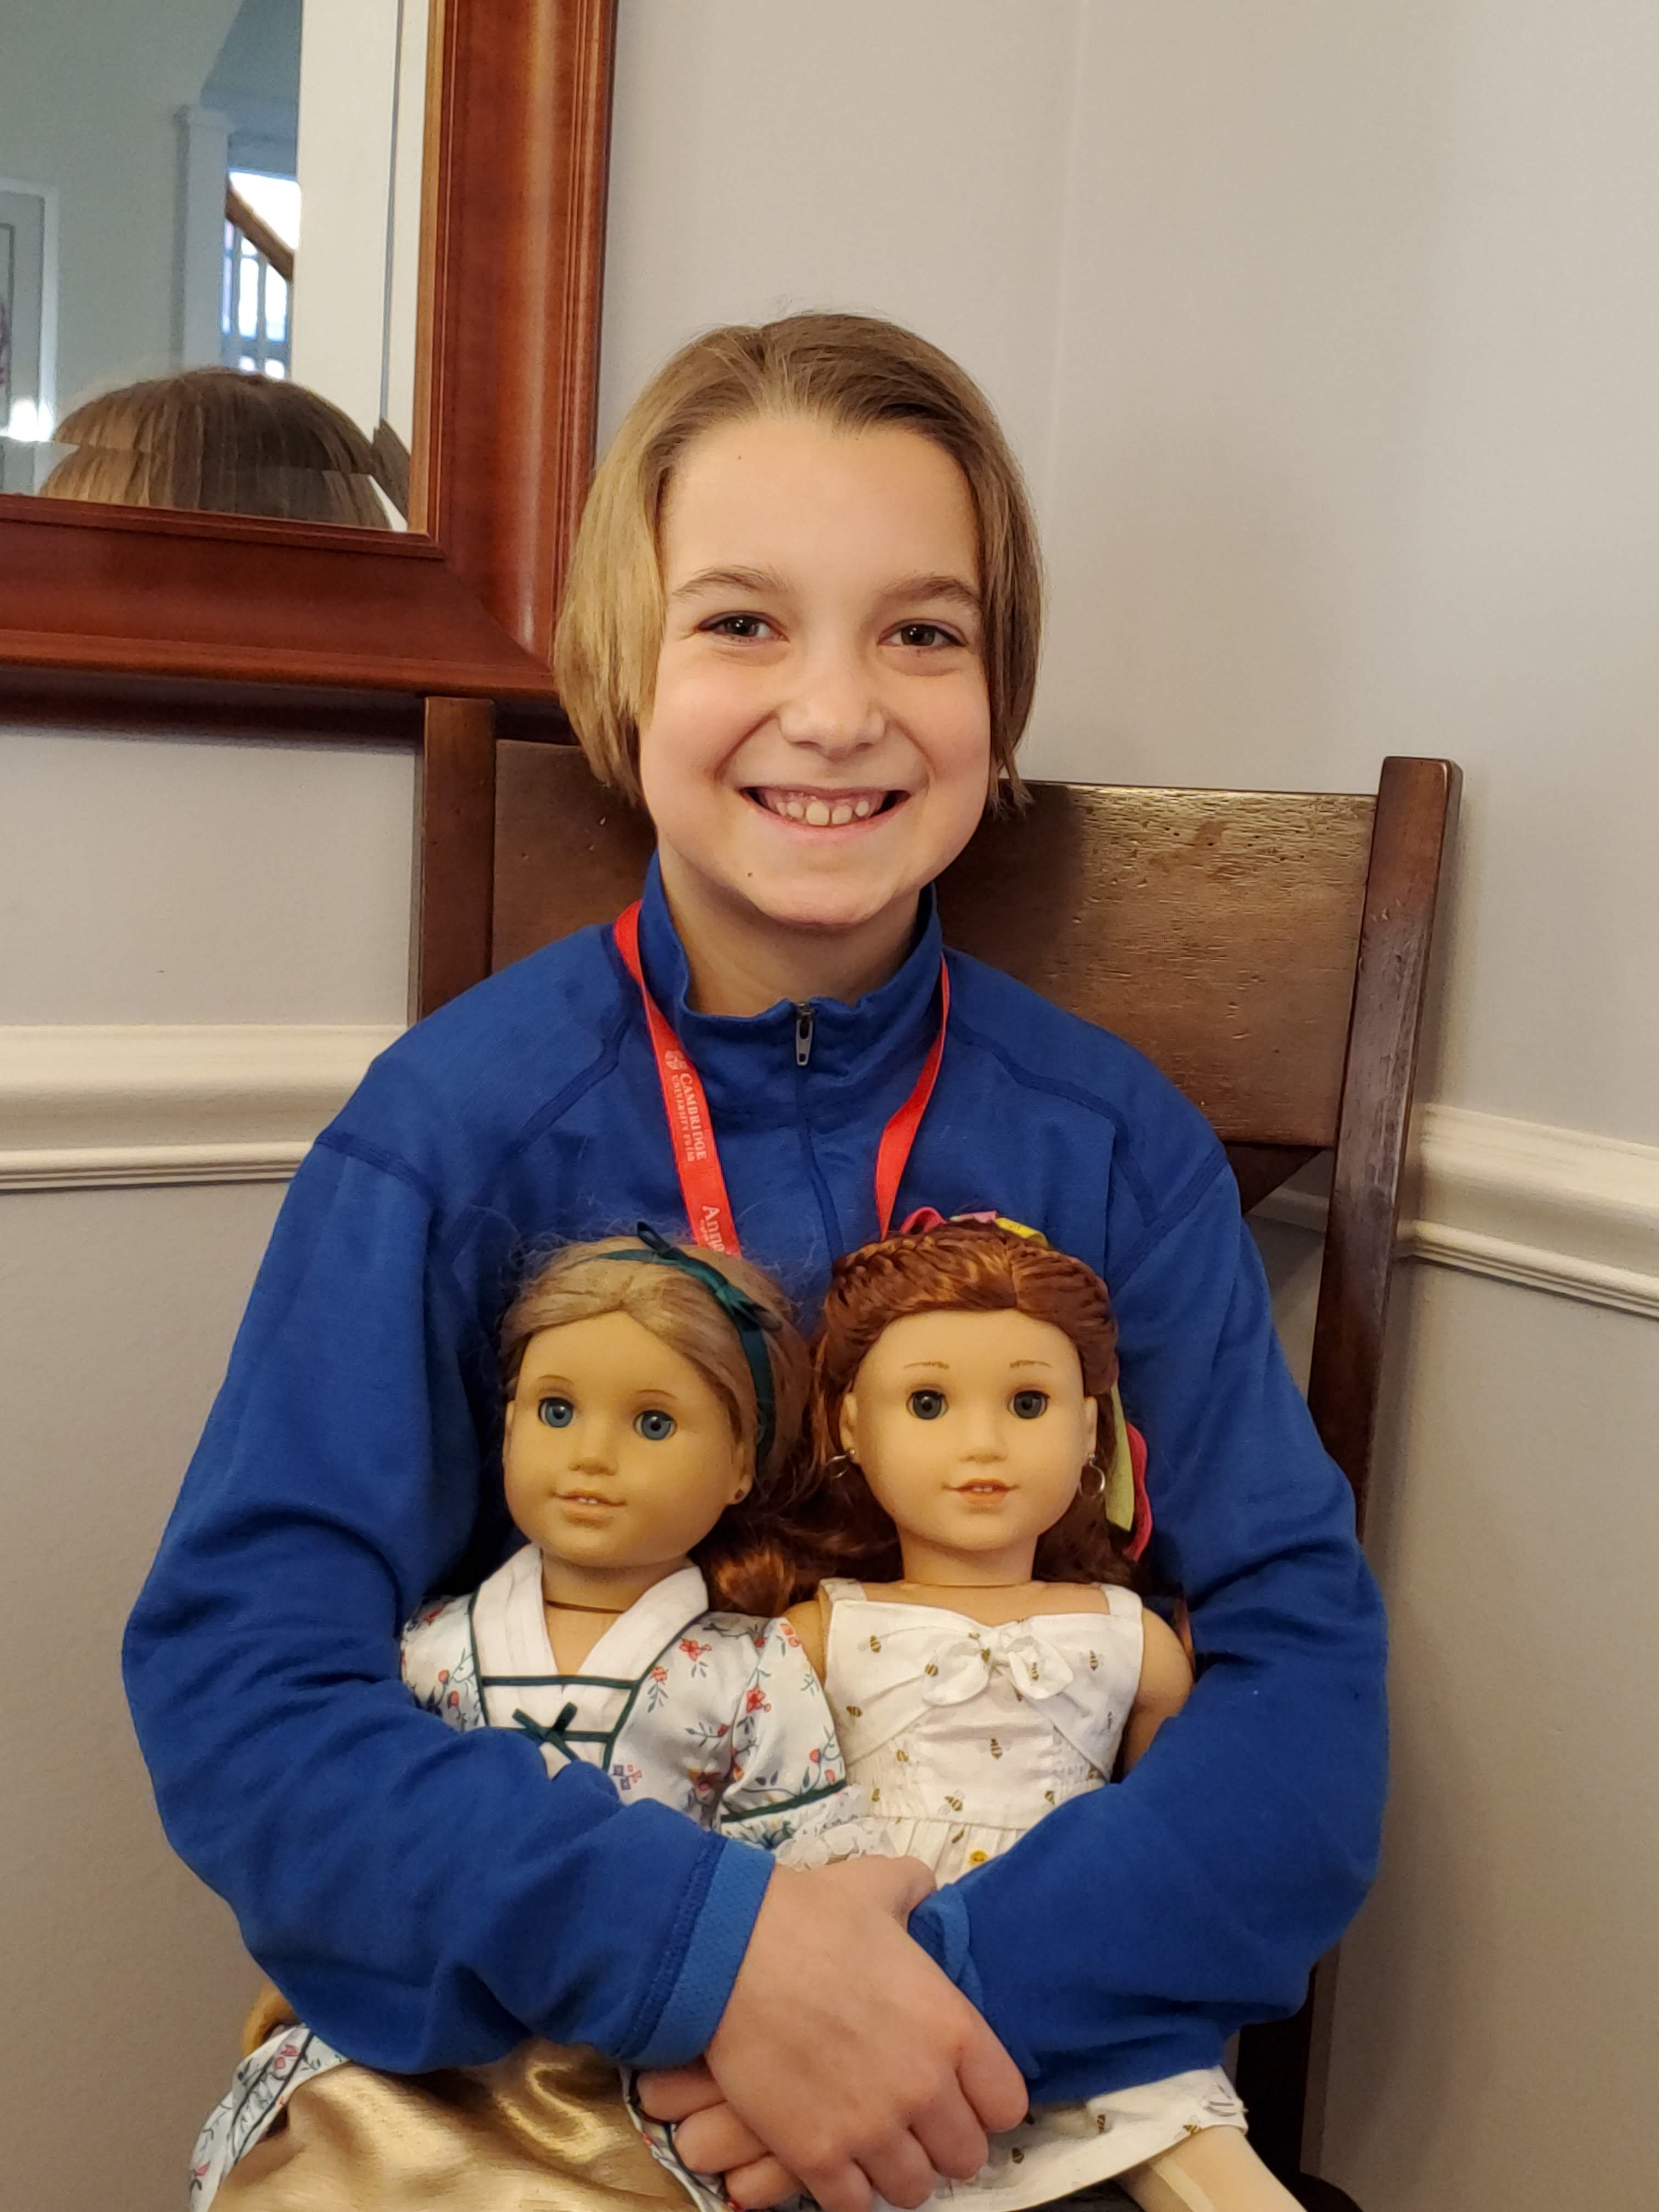 One attendee poses with her American Girl dolls, Elizabeth and Blair.